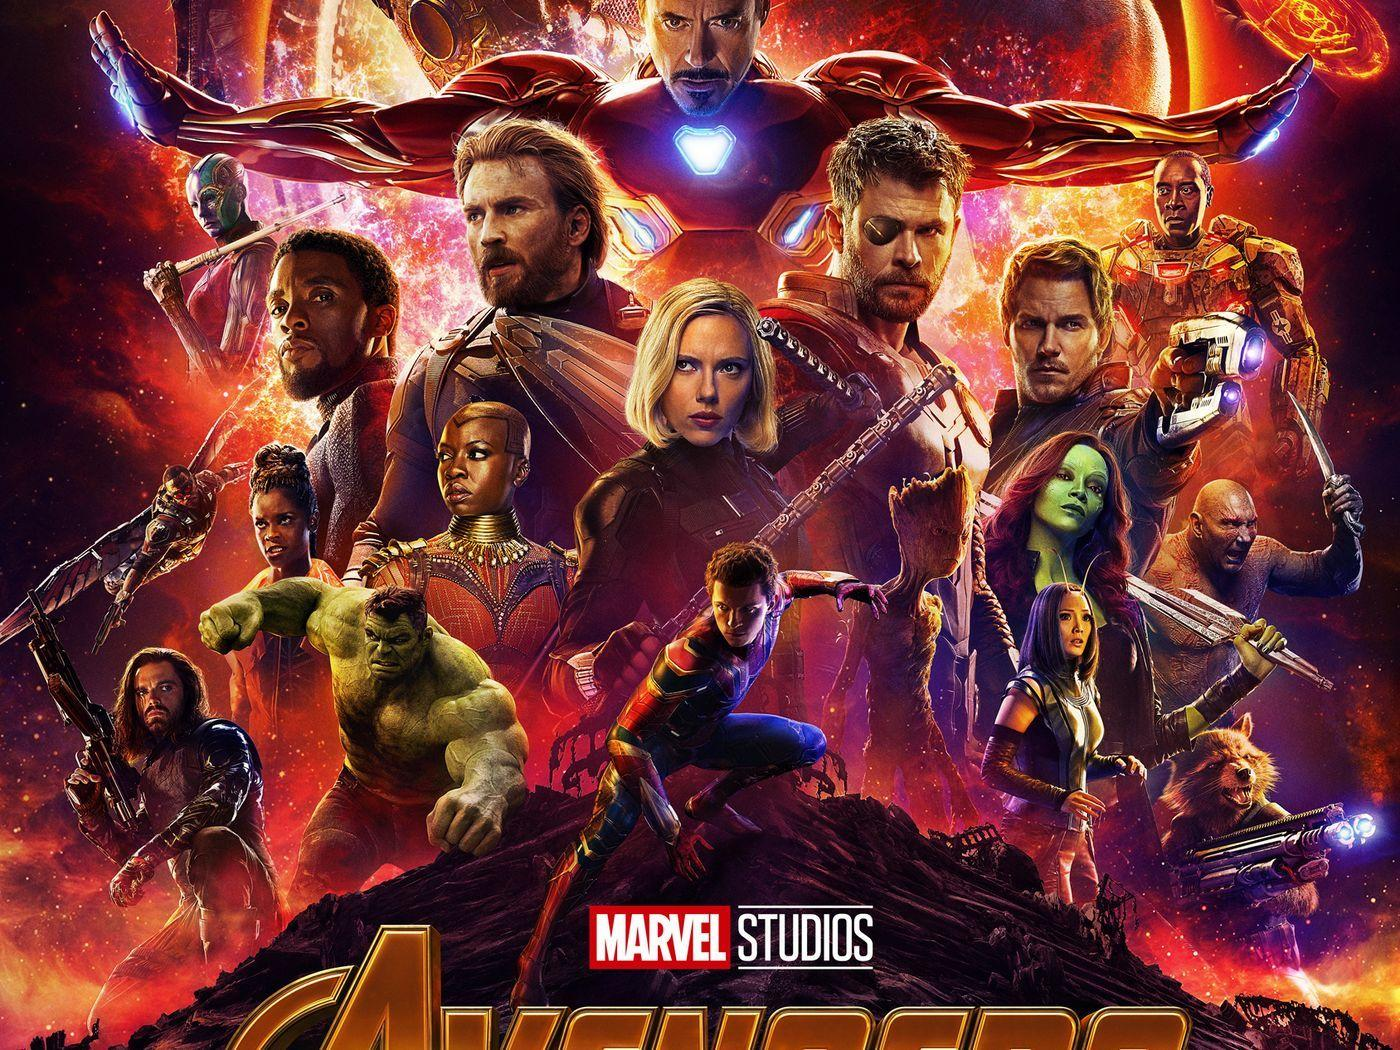 Marvel Studios Avengers Endgame Wallpapers Wallpaper Cave